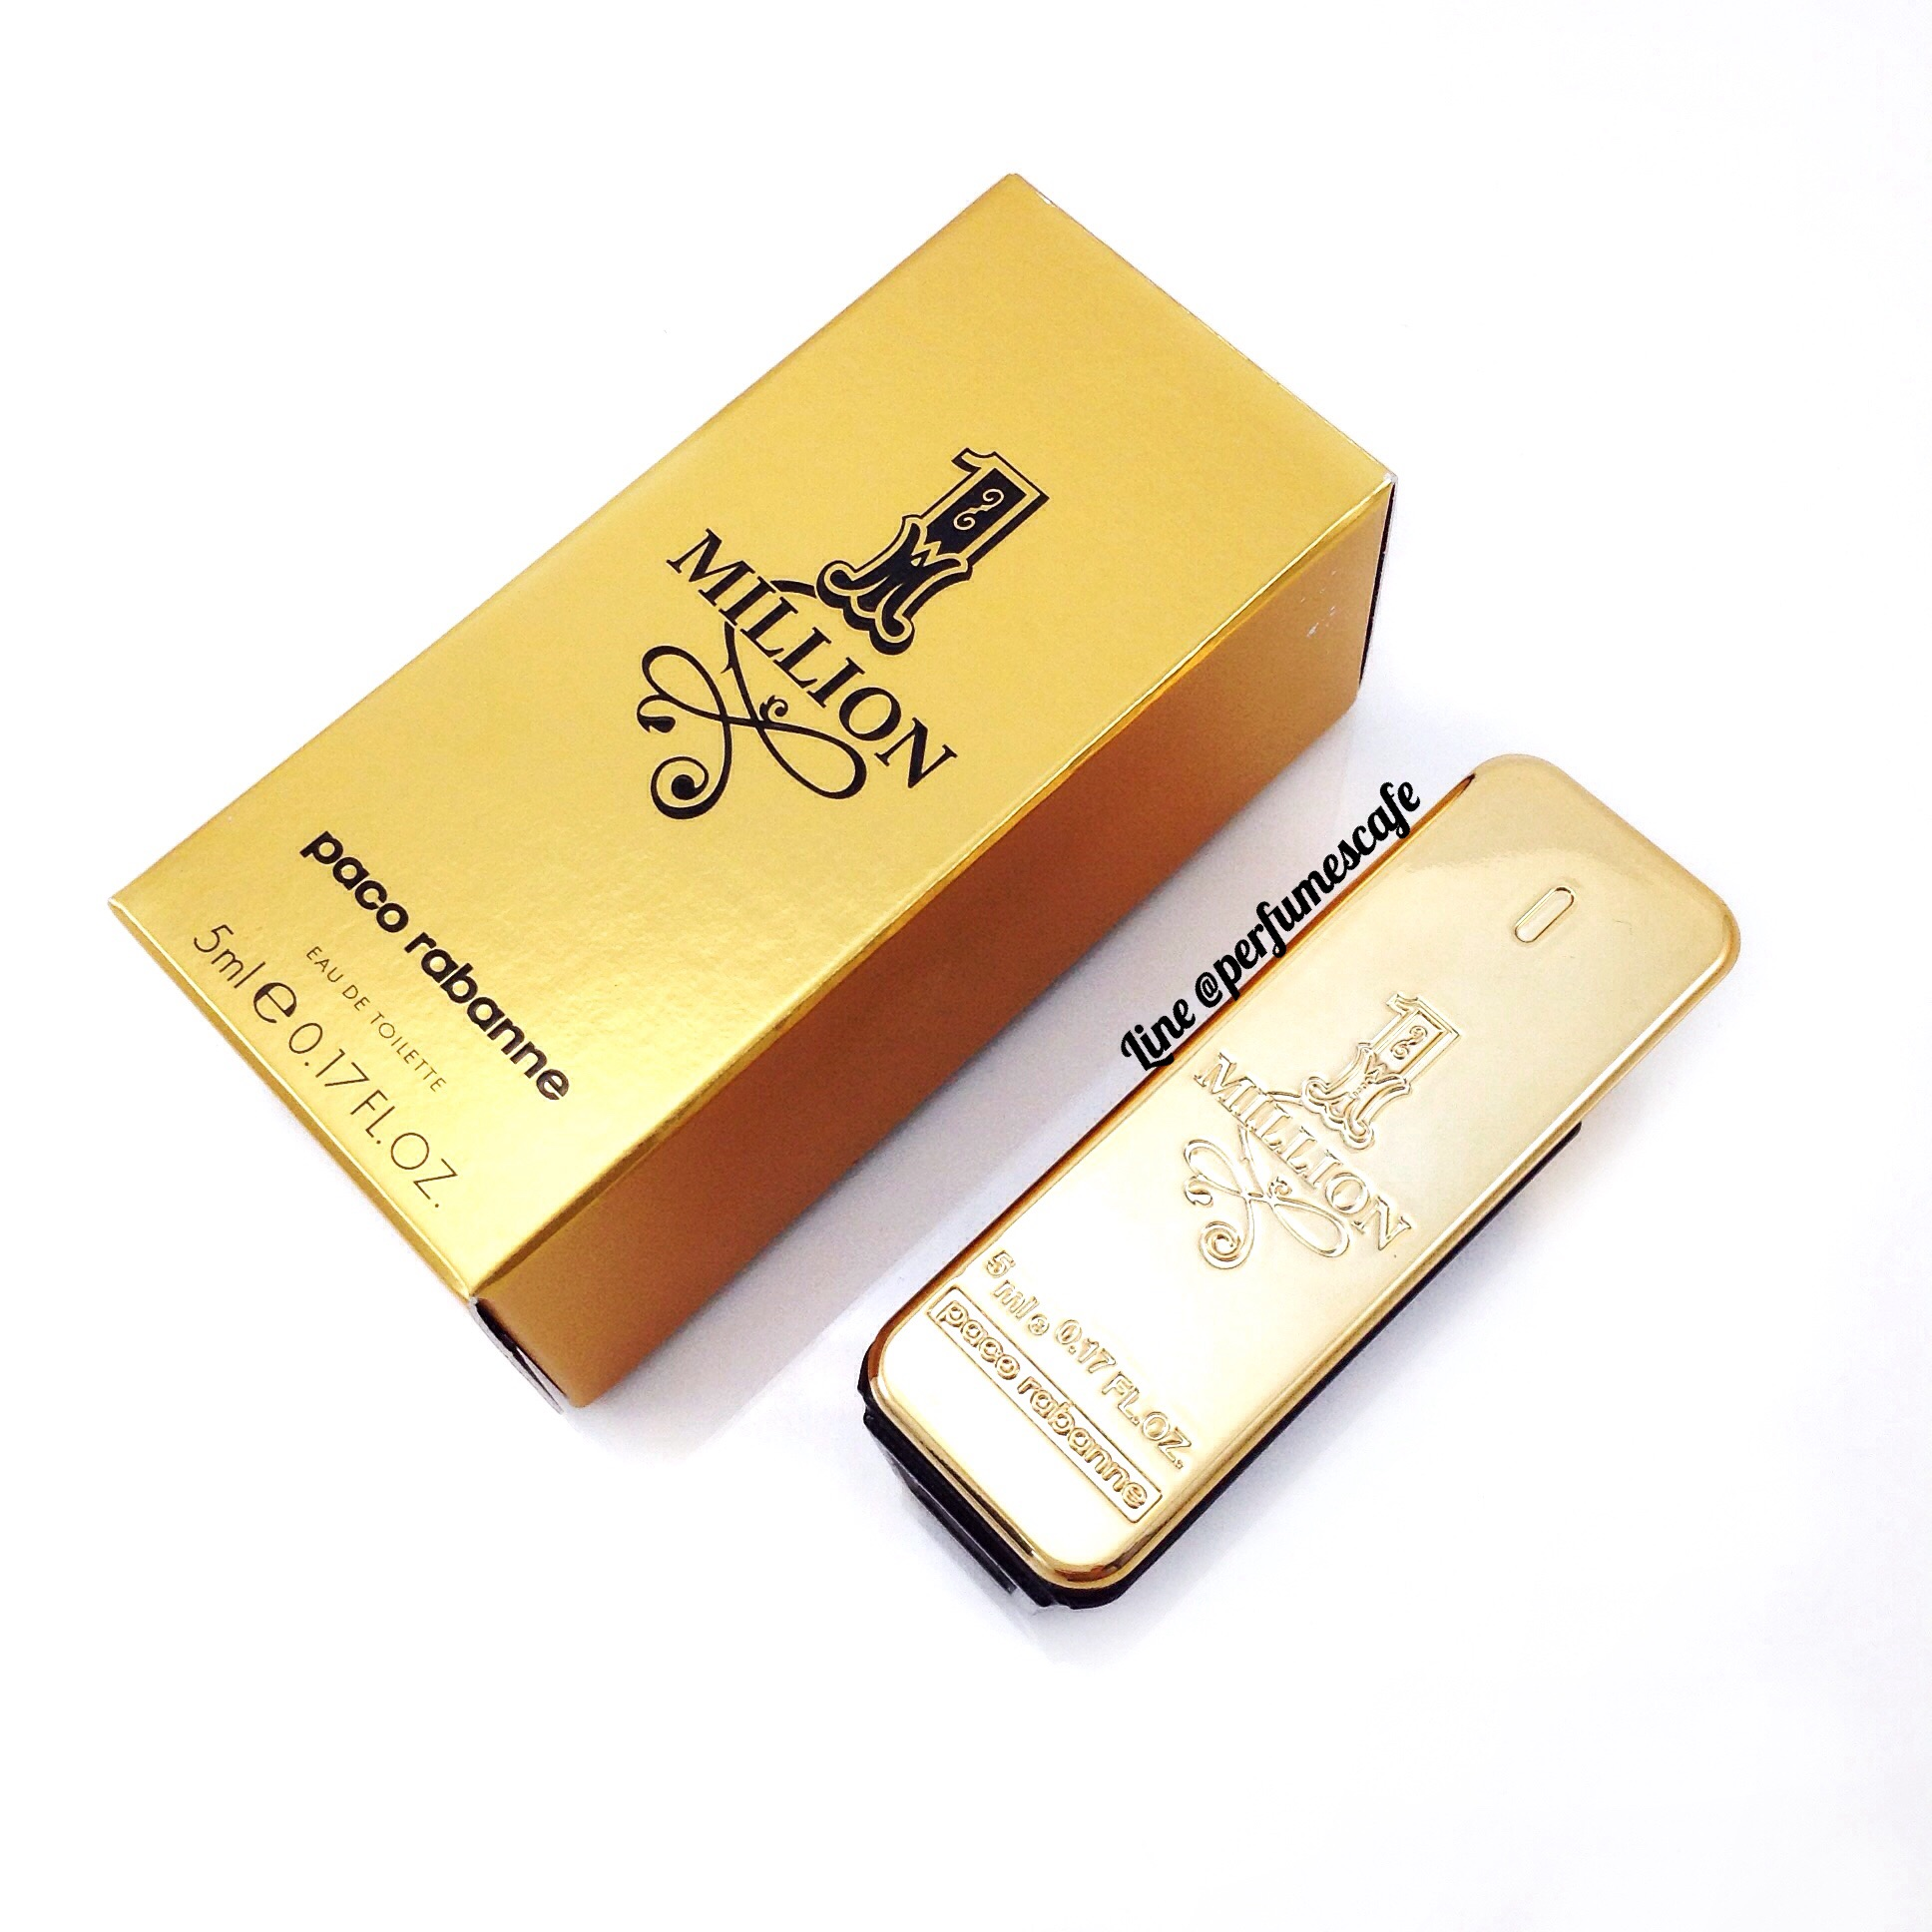 Paco Rabanne 1 Million Eau de Toilette 5ml. แบบแต้ม